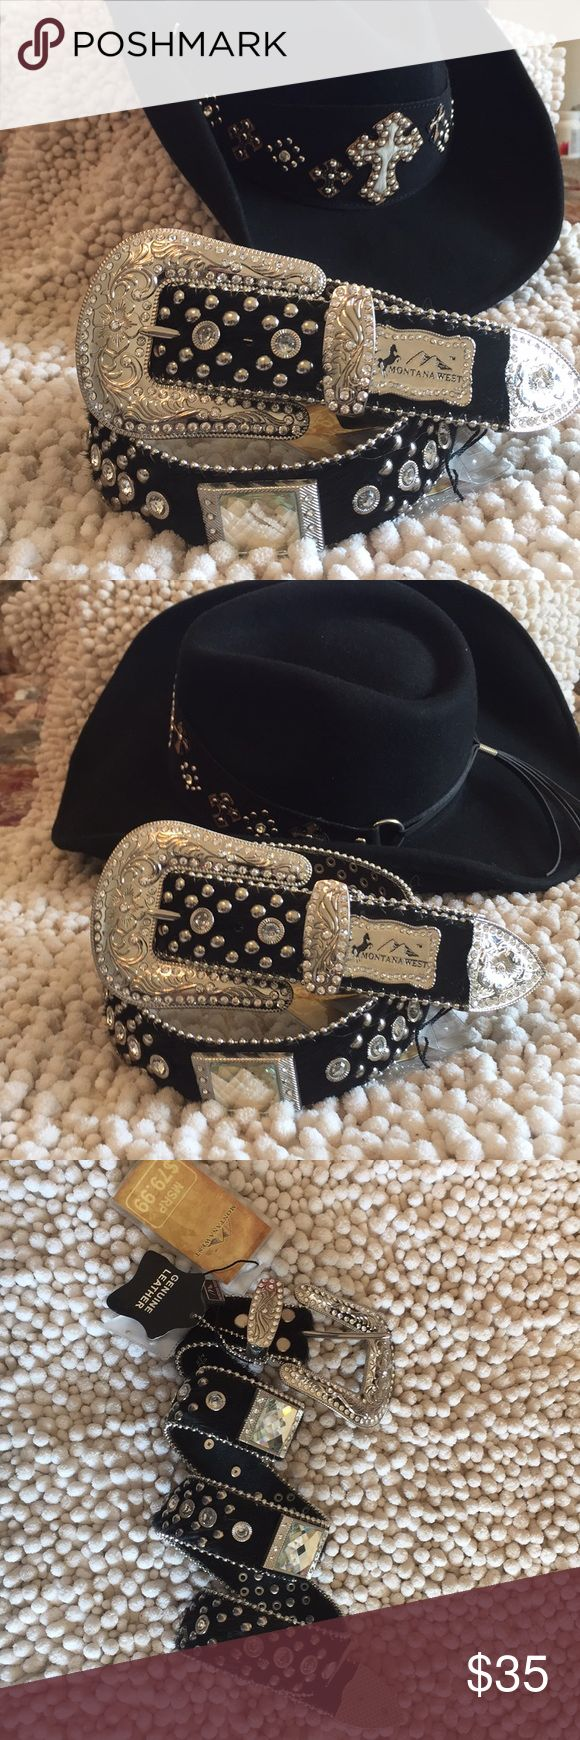 """Ladies Western Bling Horse Hair Belt 32-36"""" 34-38"""" Montana West Ladies Western Belt. High Quality Genuine Leather Black Horse Hair Heavy Duty Belt.  Chrome color metal accessories with Etched with Rhinestone Embellishments. Crosses. On the leather Belt the Rhinestones are riveted in place to insure lasting design. Very flexible Belt with five eyelets to offer a range of waist fits from 34-38.5"""" & 31.5-36""""s. Note this is for the Belt only. The hat shown is just a backdrop for the picture…"""